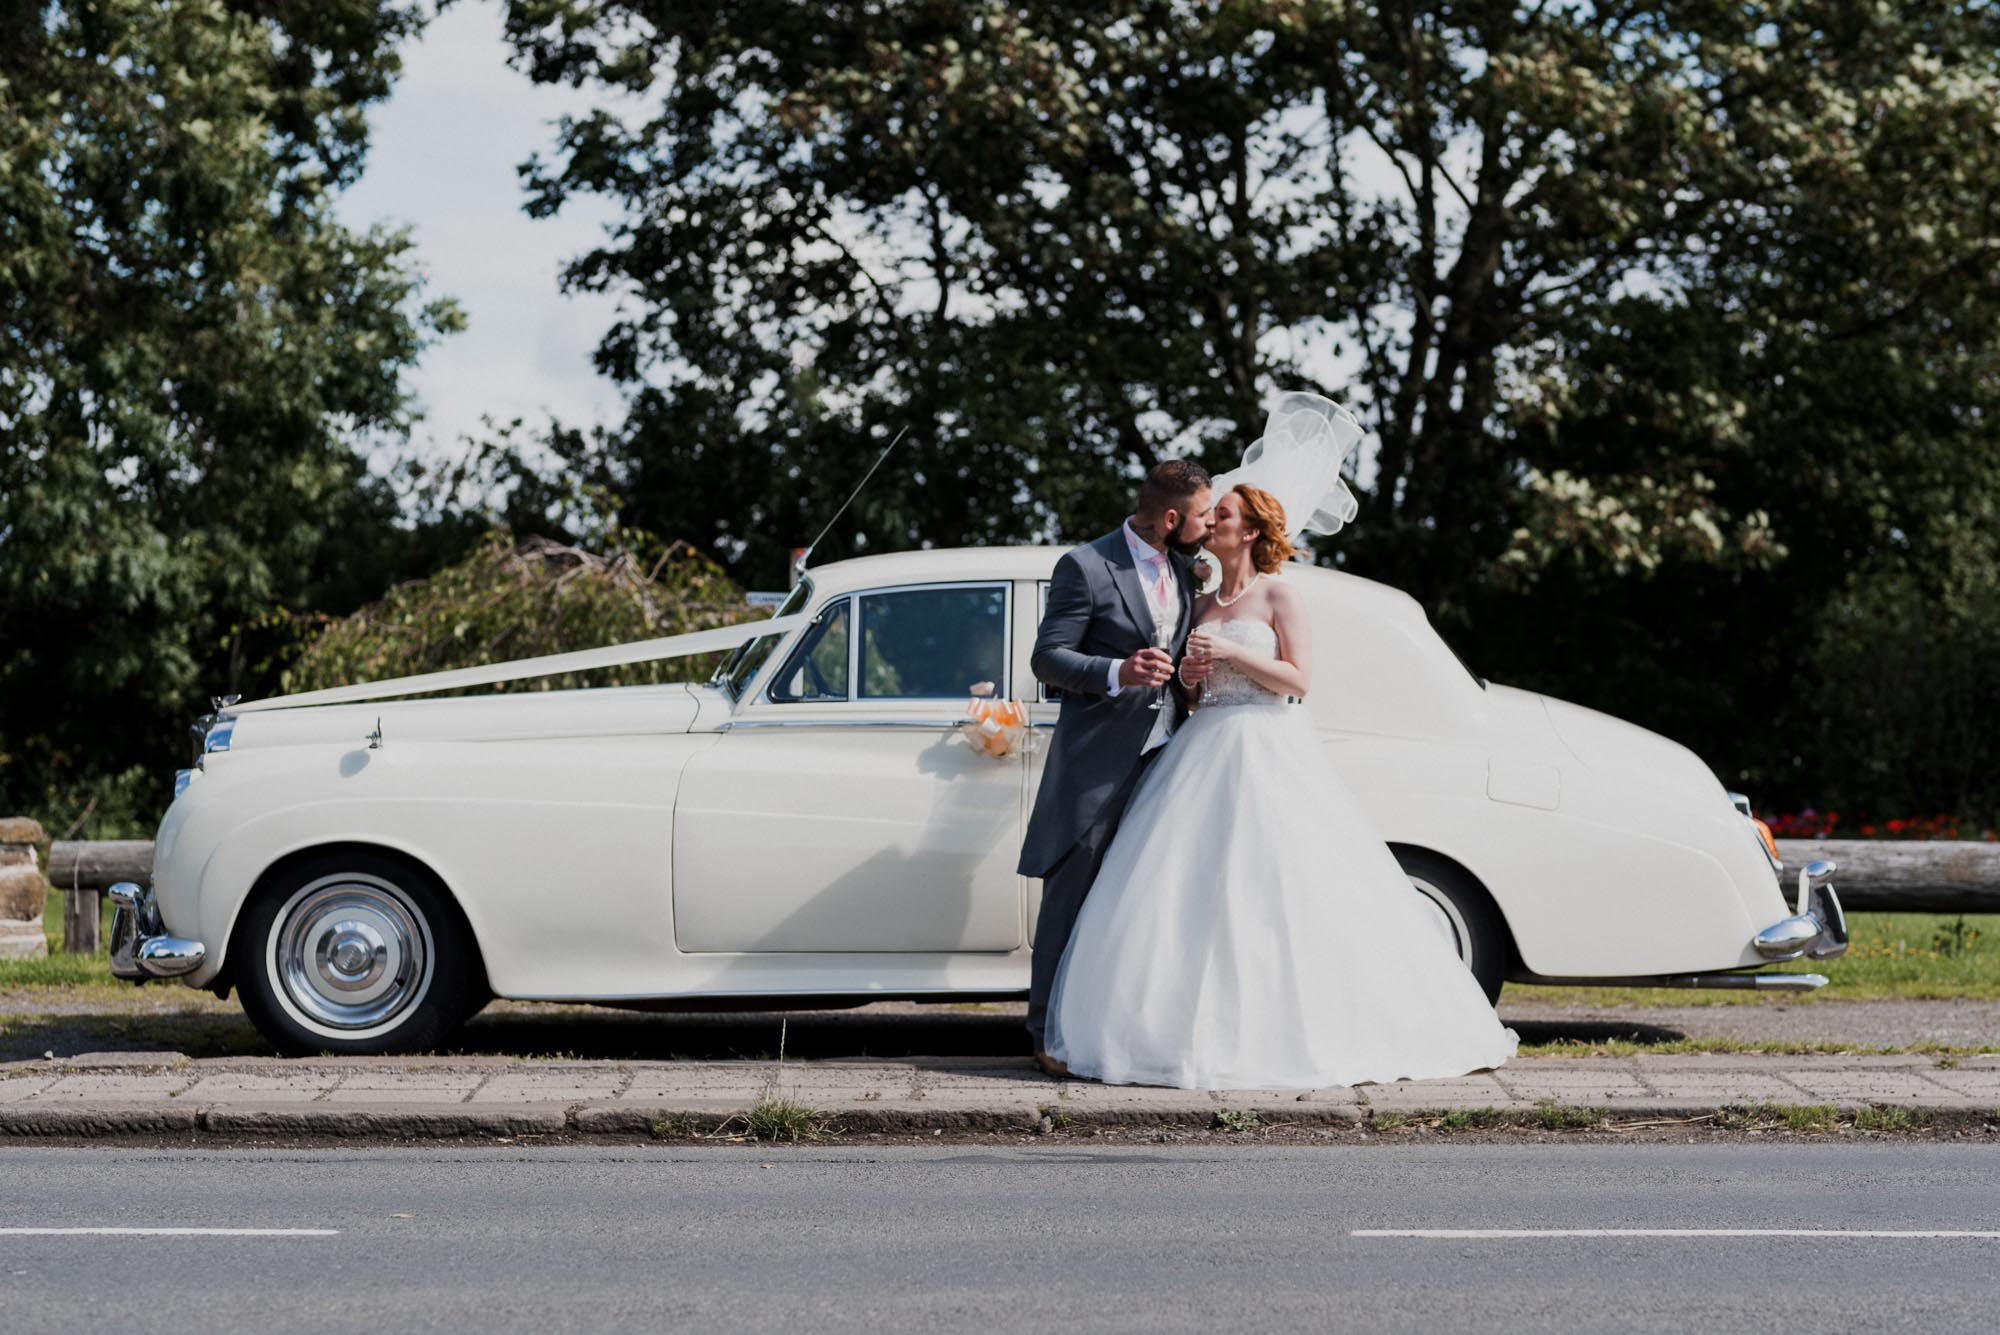 Wedding photography prices explained the 2018 complete for How much should i pay for a wedding photographer